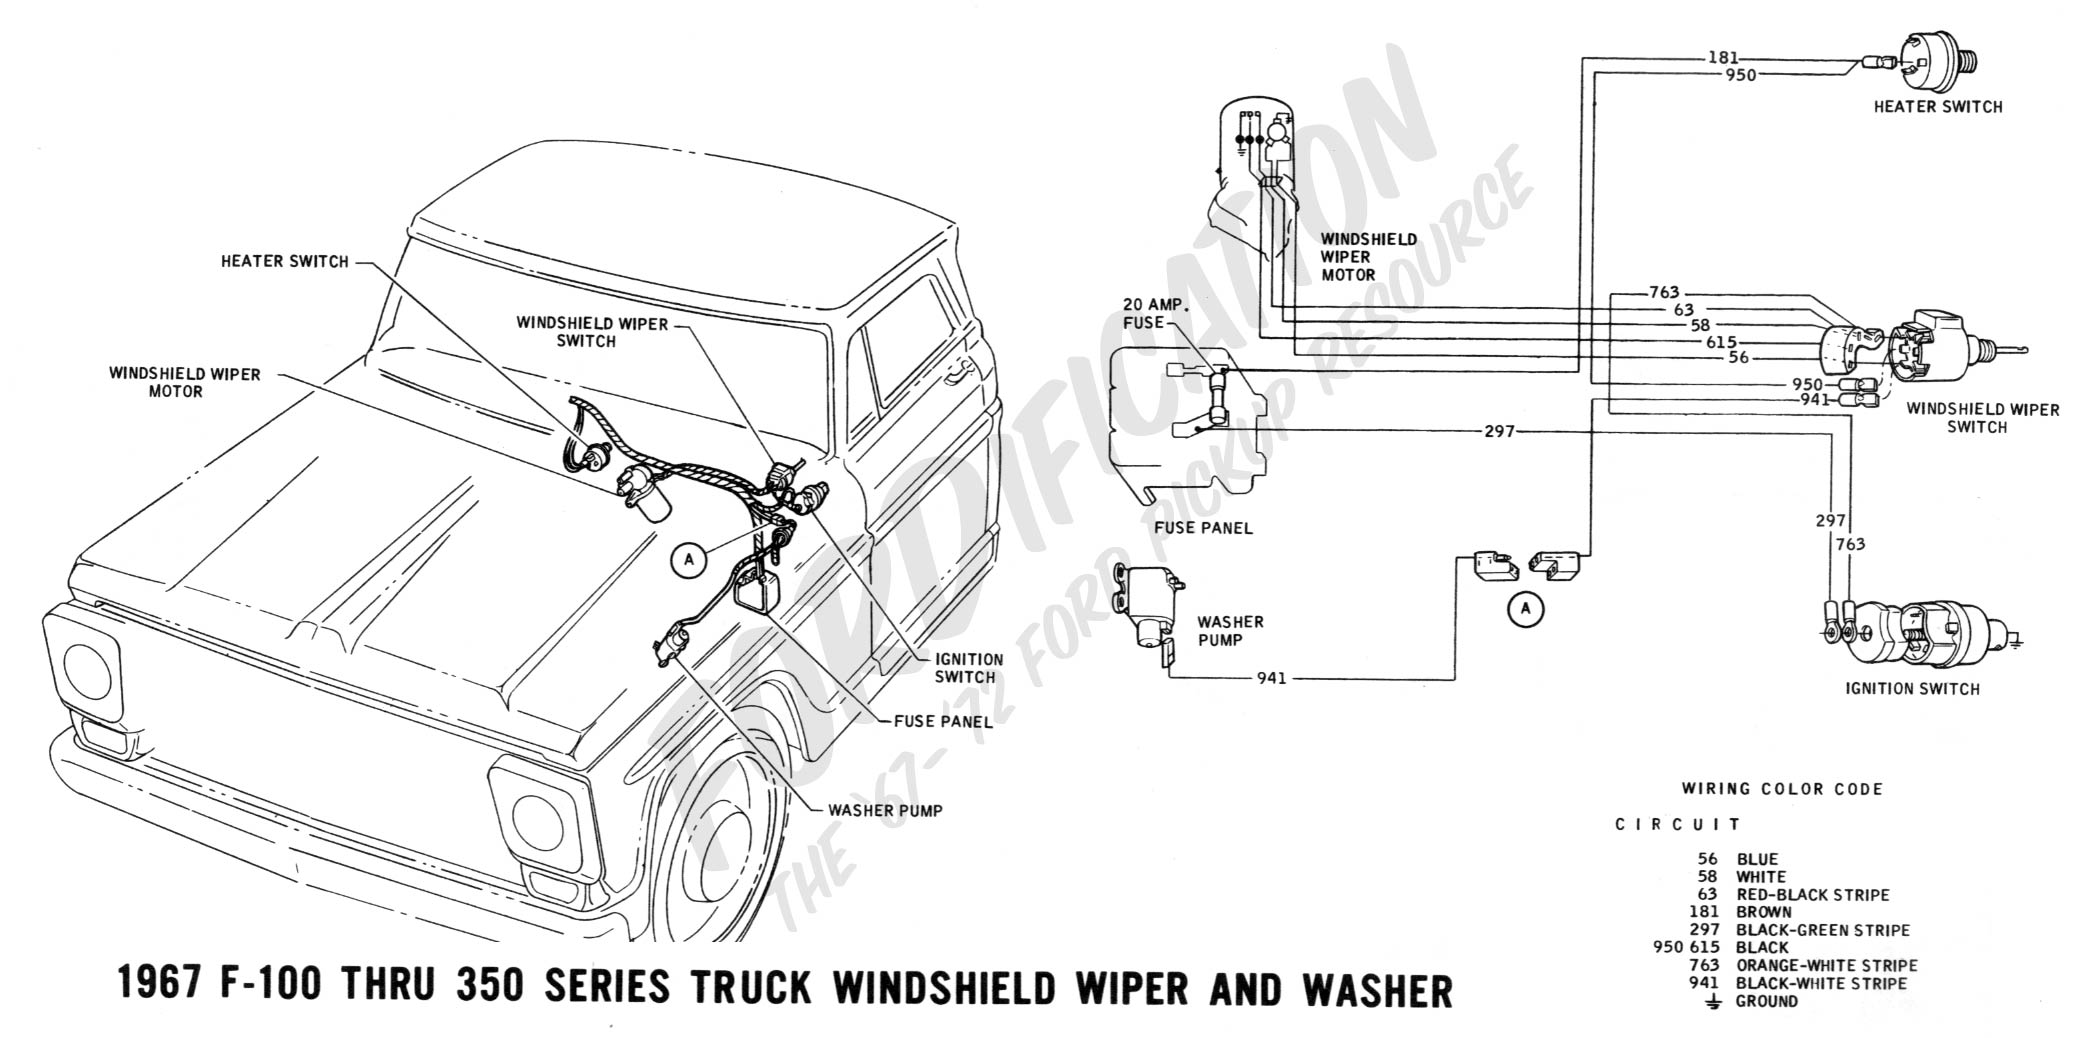 1989 Ford F150 Ignition Switch Wiring Diagram Will 2005 Diagrams Truck Technical Drawings And Schematics Section H 1988